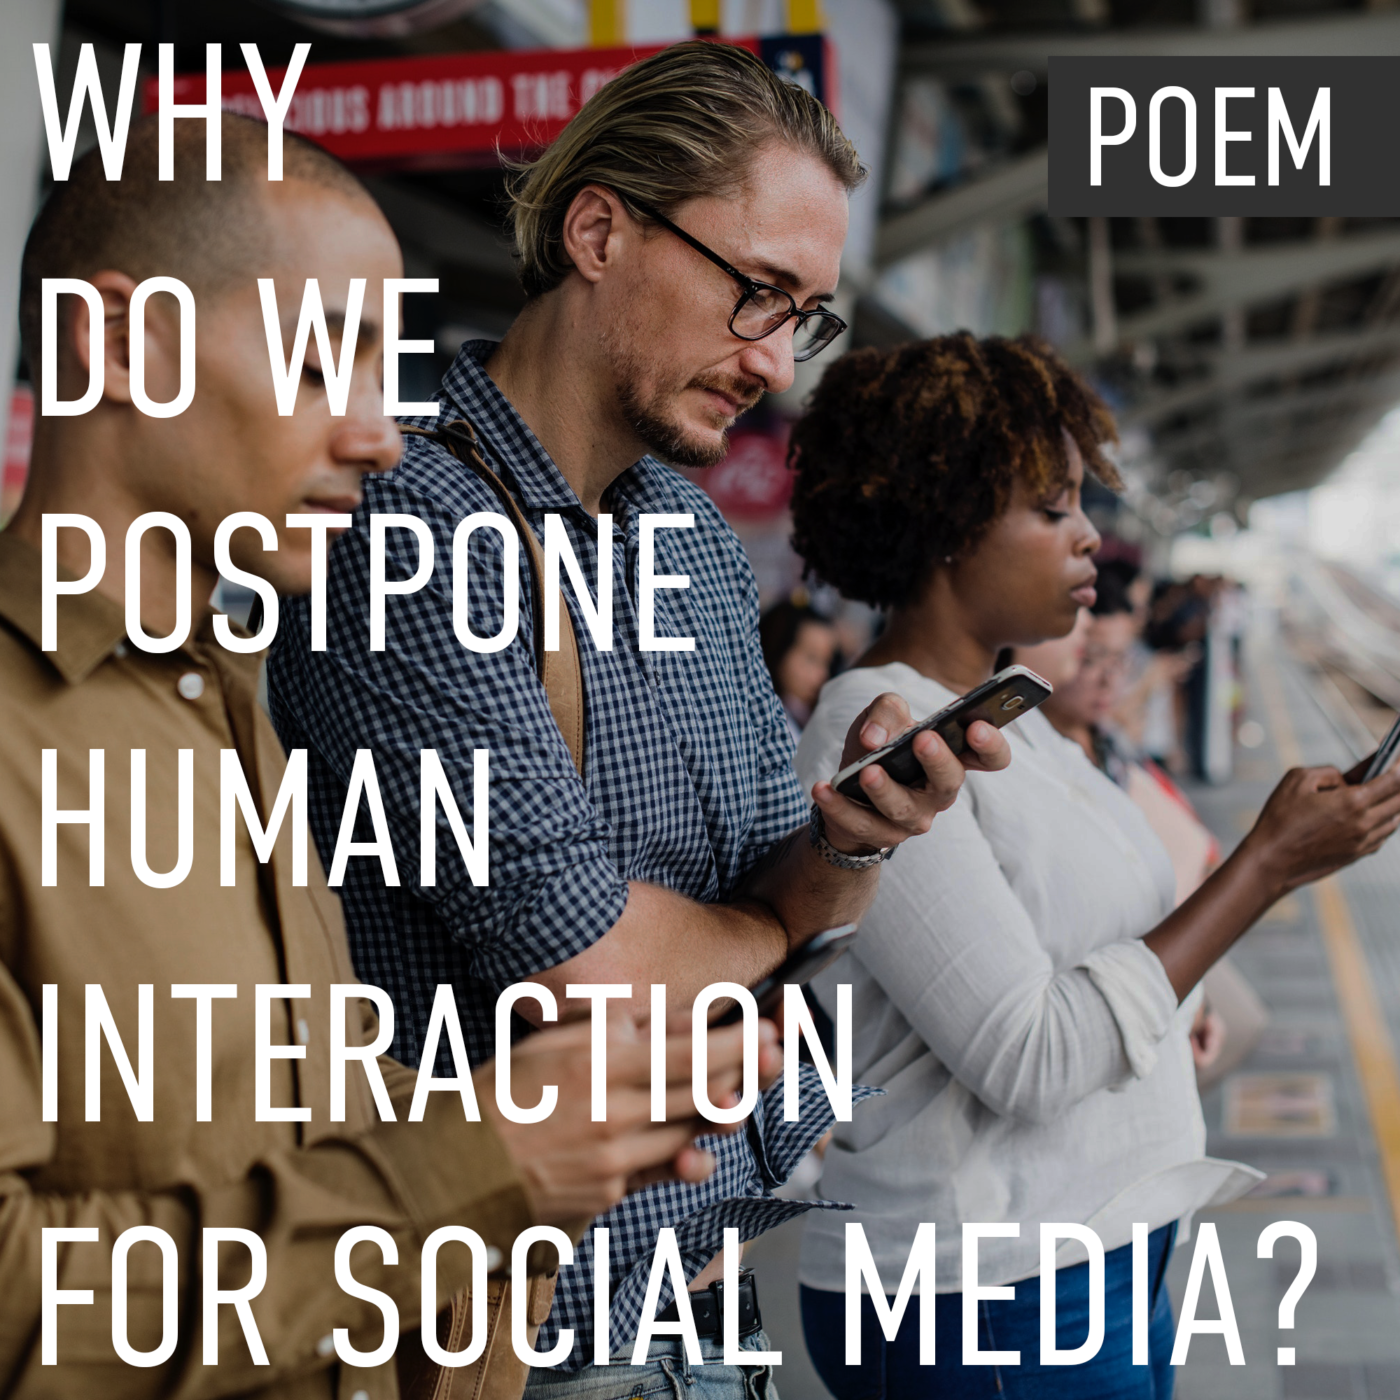 Why do we postpone human interaction for social media?